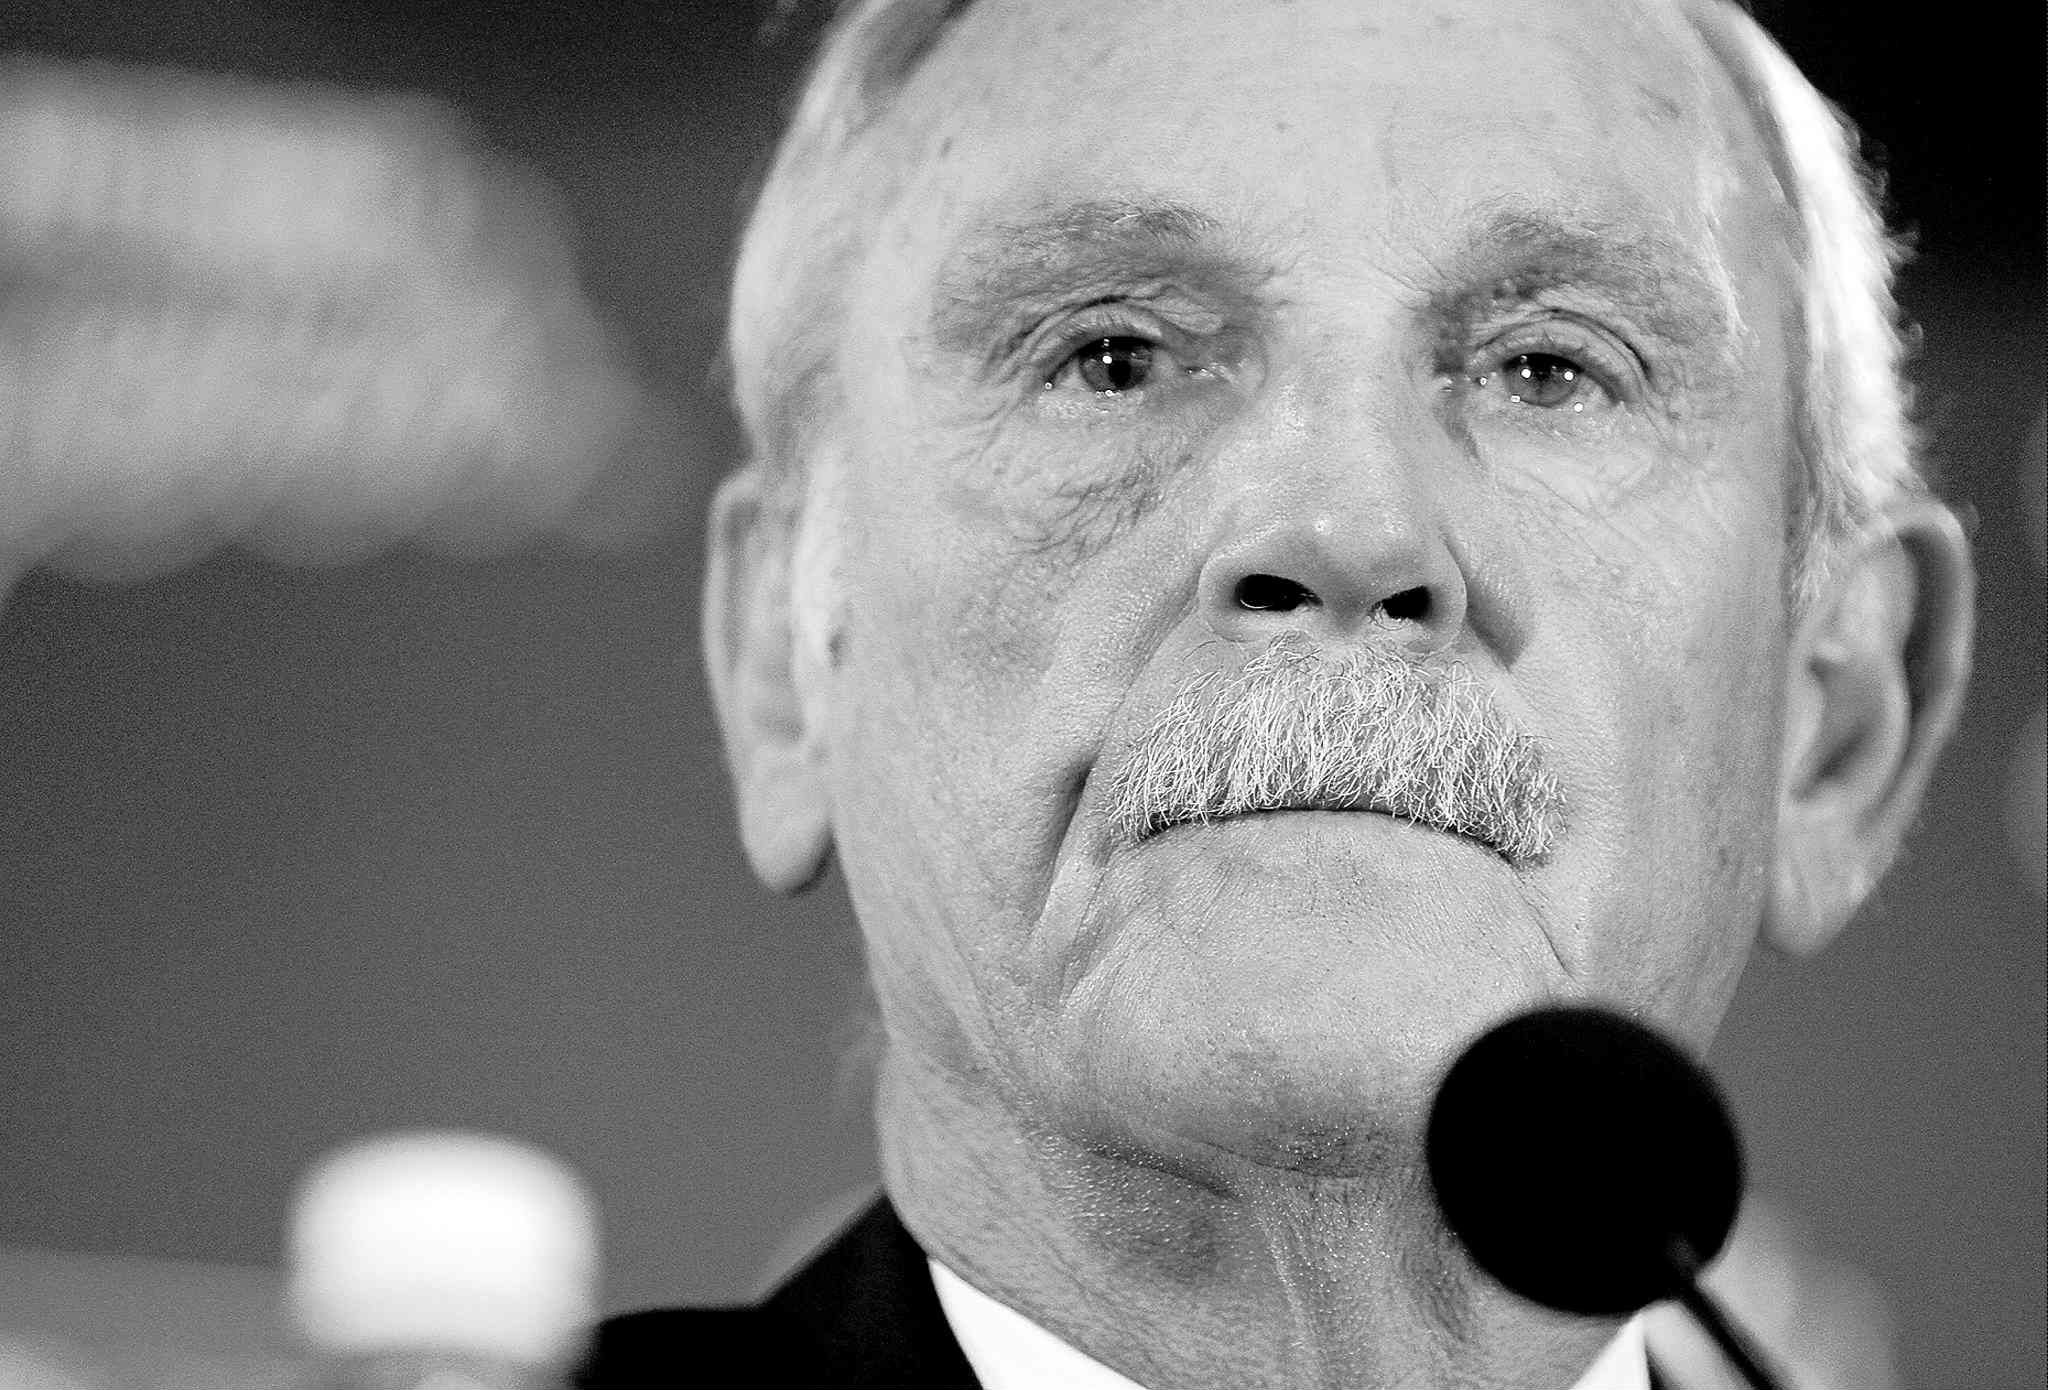 After leading the Tigers to three division titles and two World Series appearances, Jim Leyland announced his retirement as manager of the Tigers on Monday.